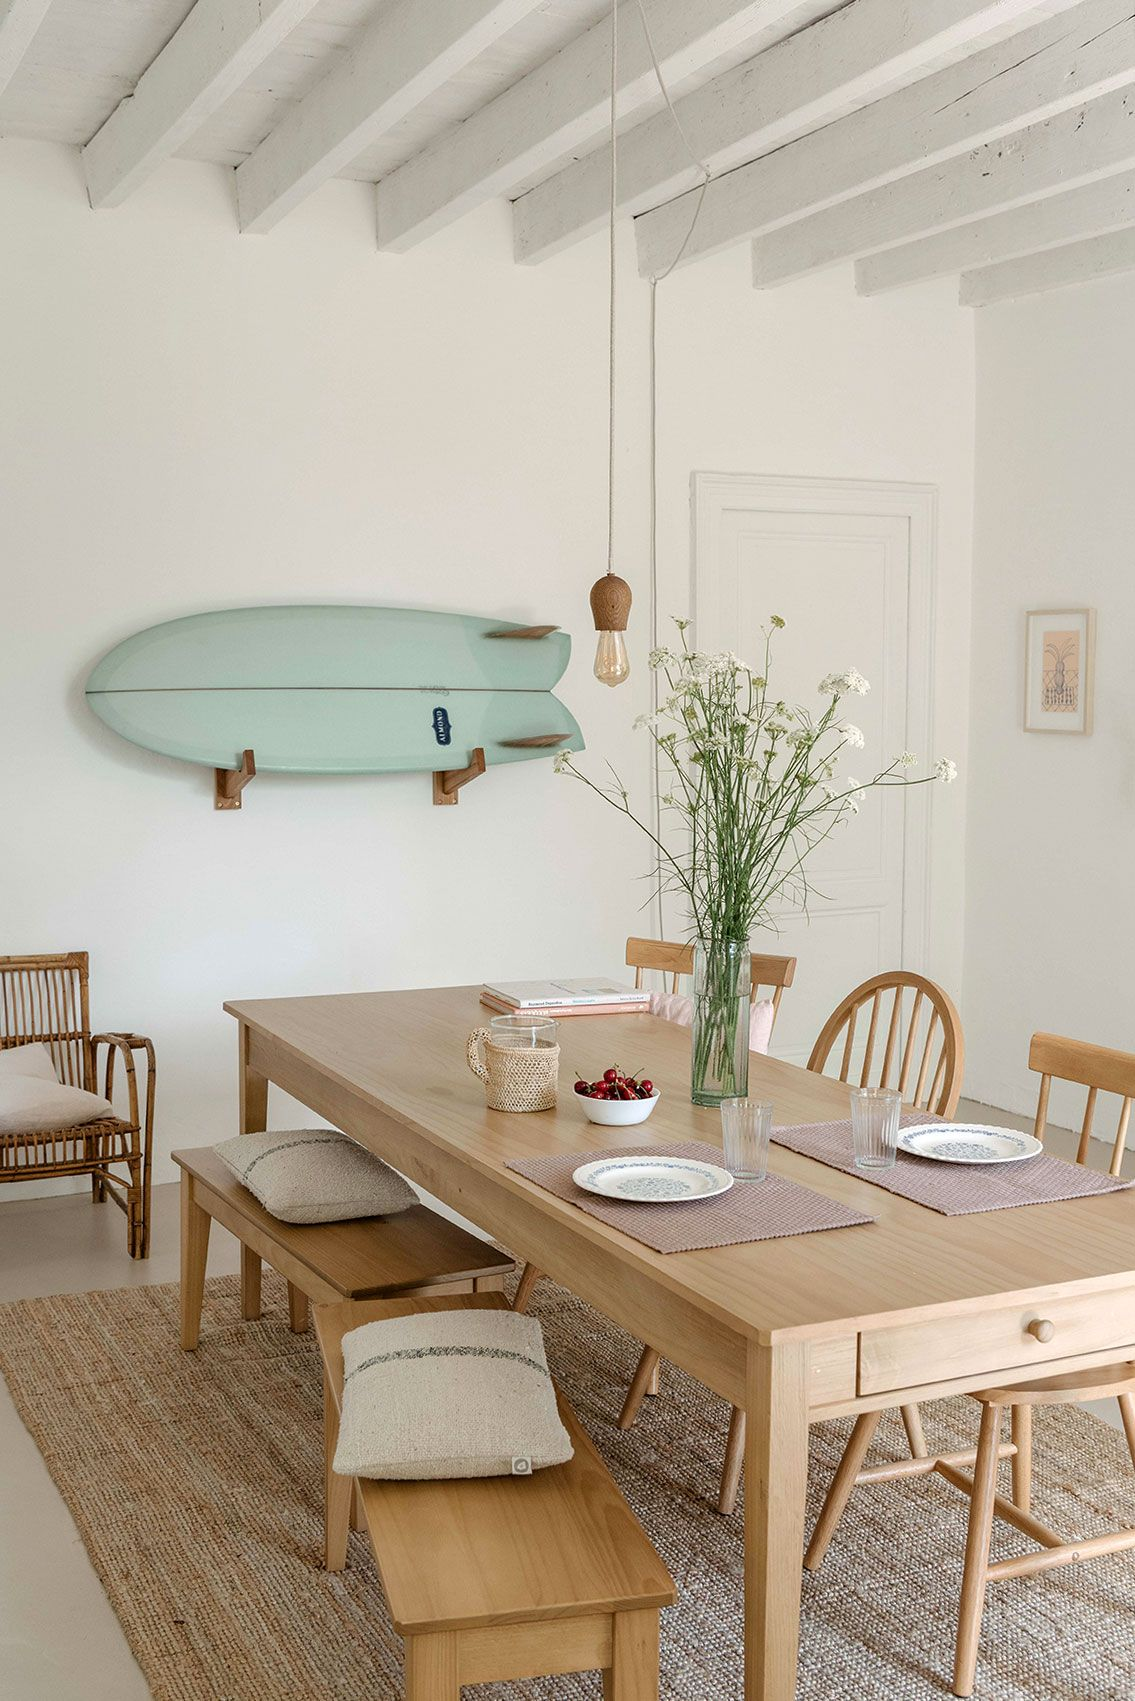 At home in france with olivia thebaut also best dining room decor images rh pinterest